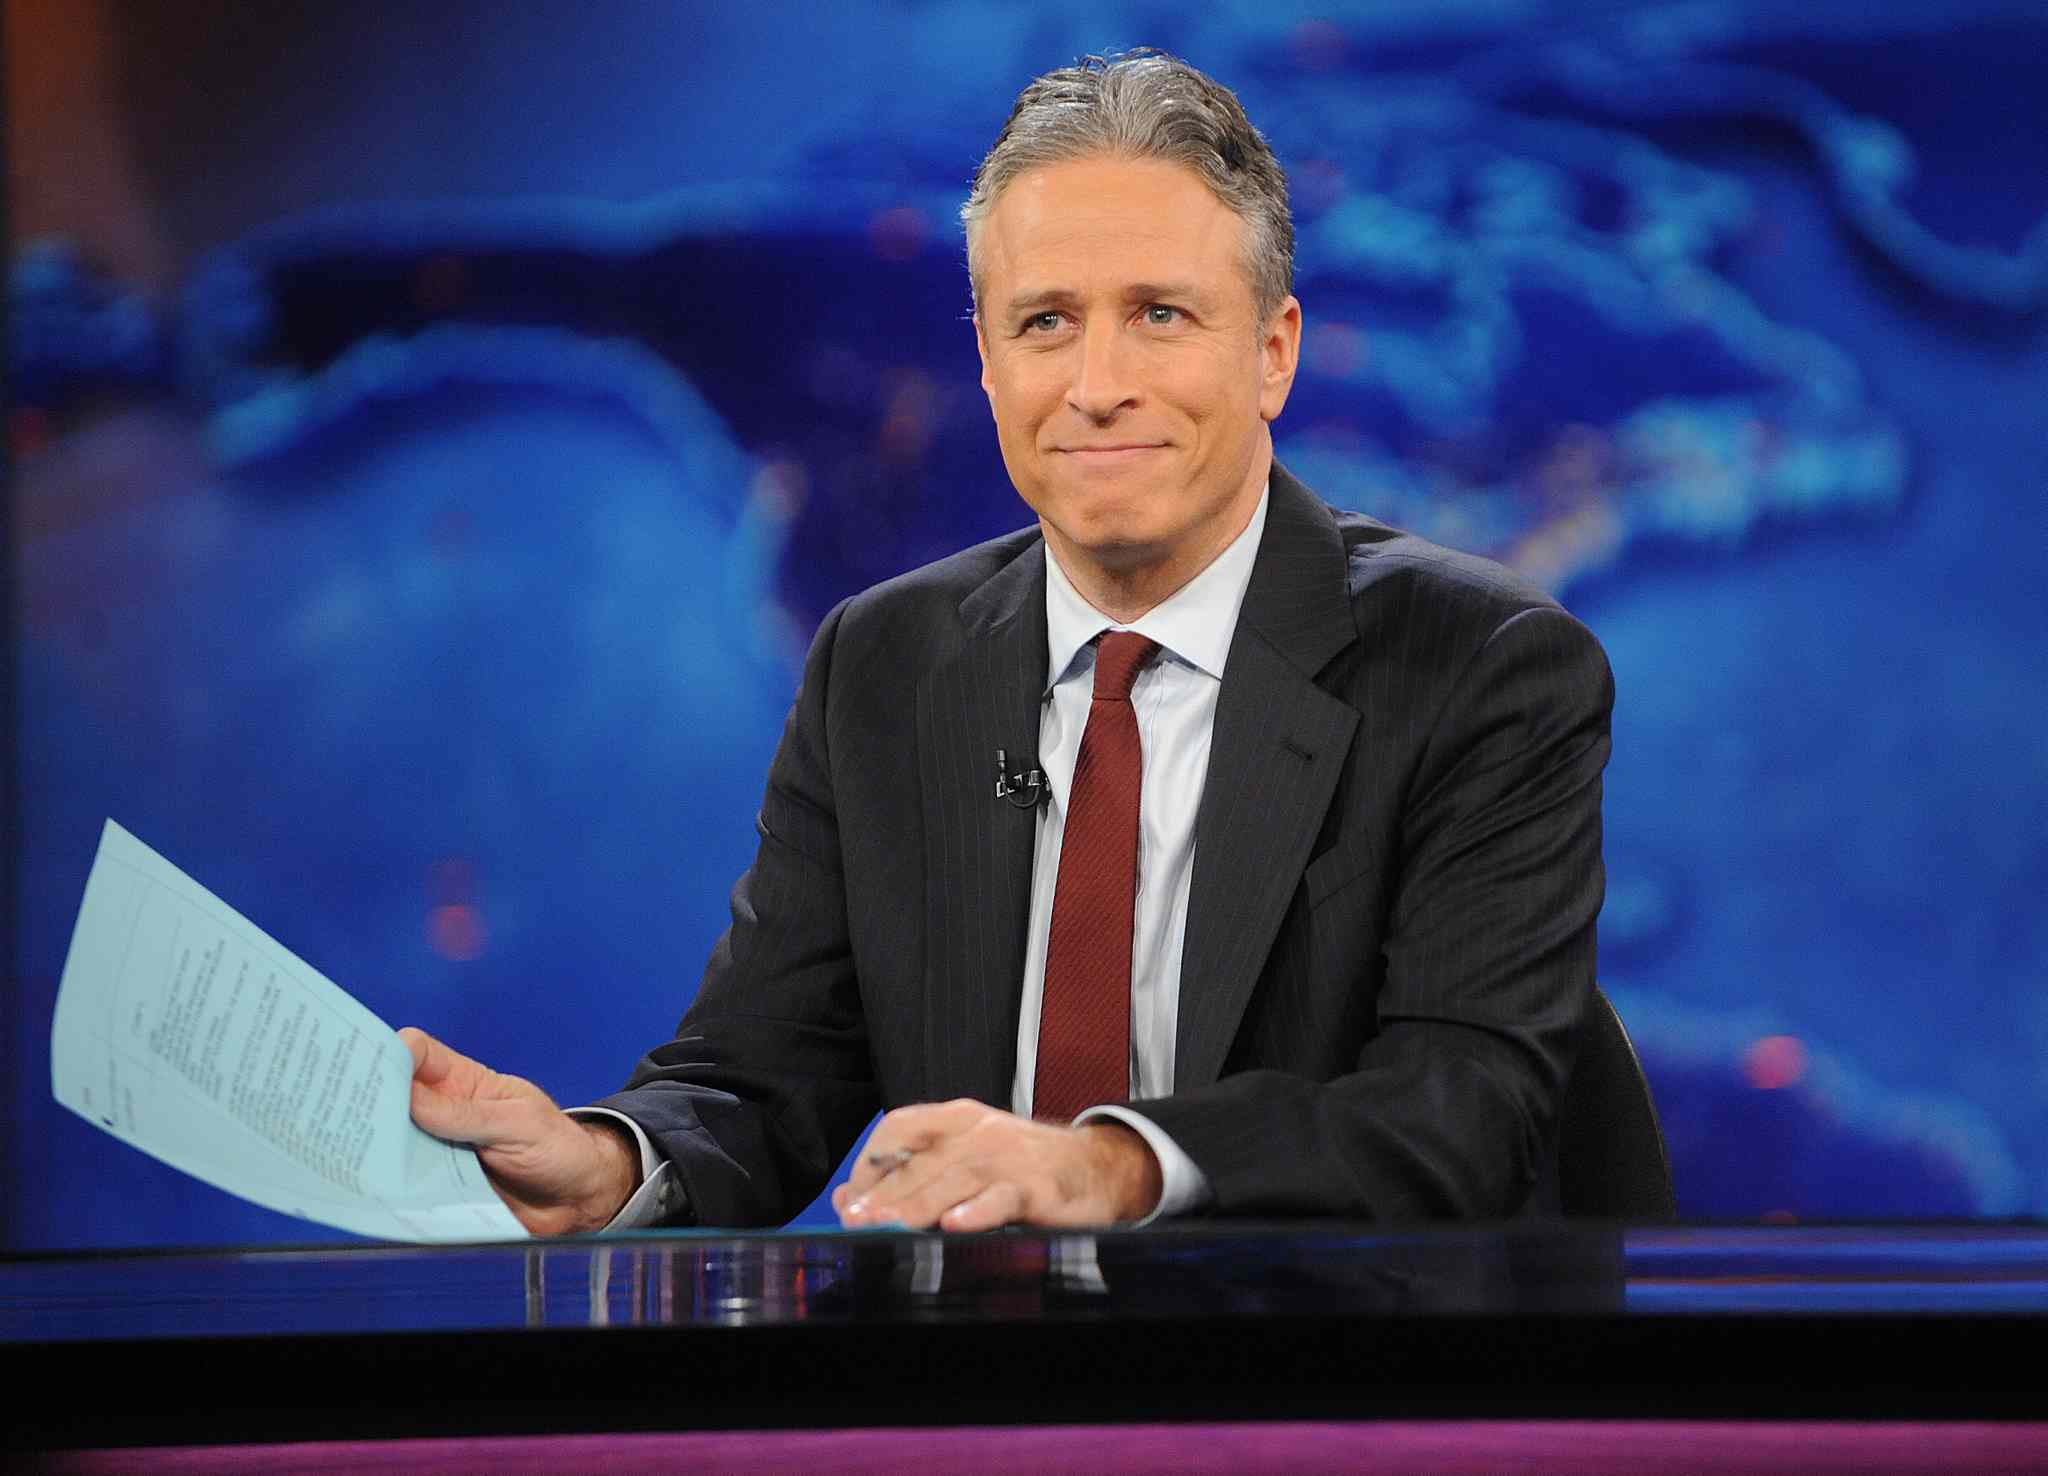 """This Nov. 30, 2011 file photo shows television host Jon Stewart during a taping of """"The Daily Show with Jon Stewart"""" in New York. Stewart said goodbye on Thursday after 16 years on Comedy Central's """"The Daily Show"""" that established him as America's foremost satirist of politicians and the media. (AP Photo/Brad Barket, File)"""